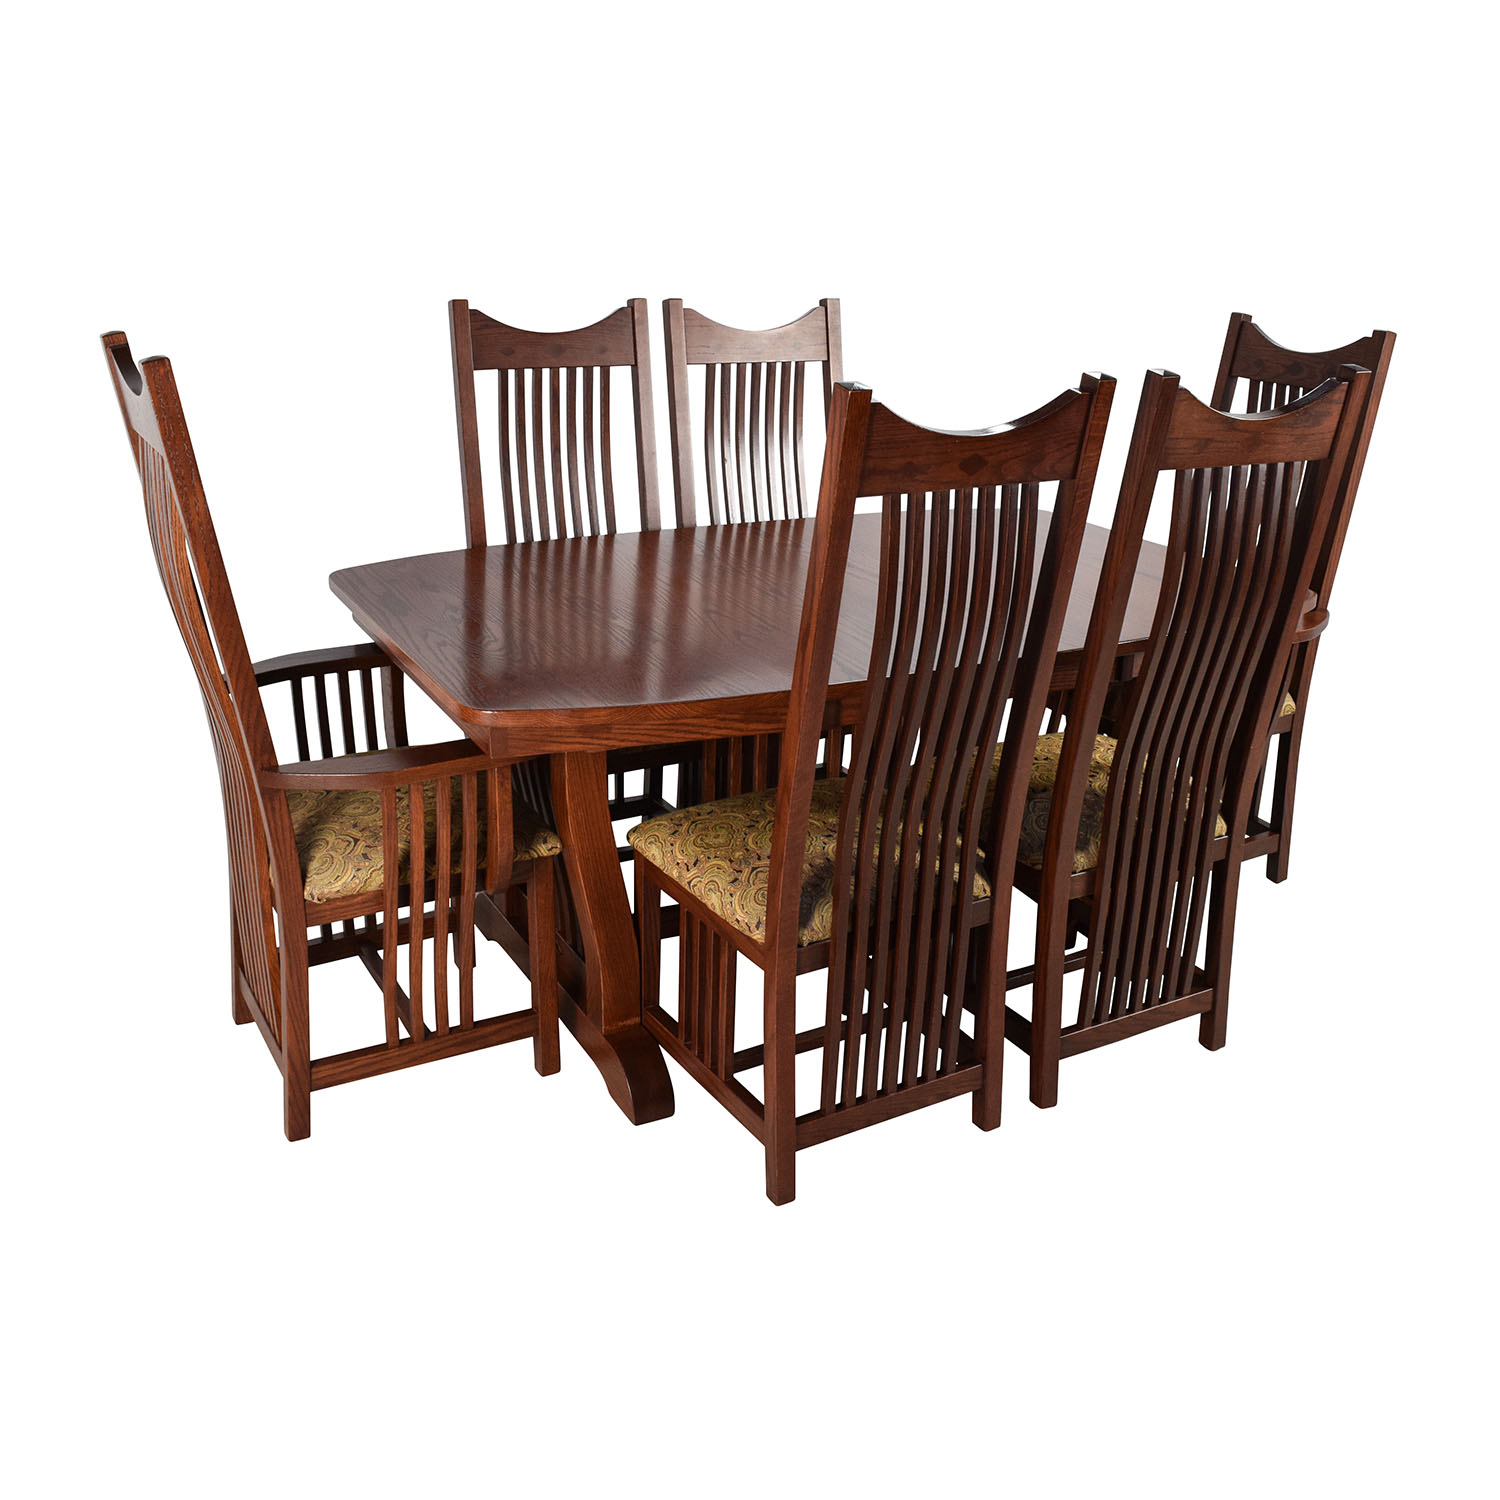 shop Homestead Furniture Homestead Furniture Classic Mission Solid Oak Dining Set online